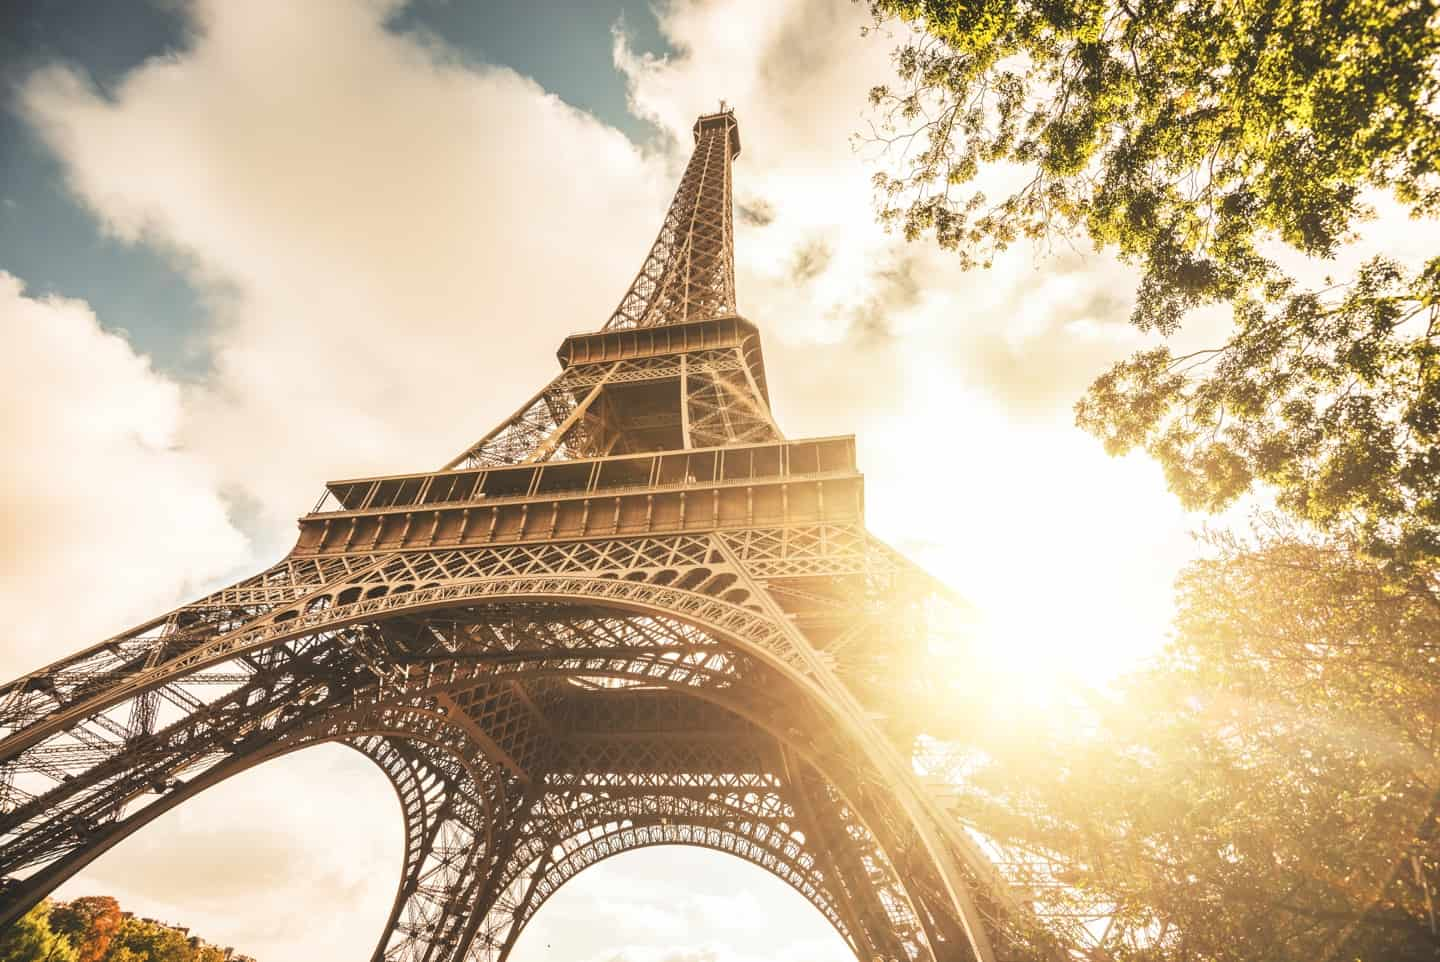 5 tips every tourist should know before visiting the Eiffel Tower 1